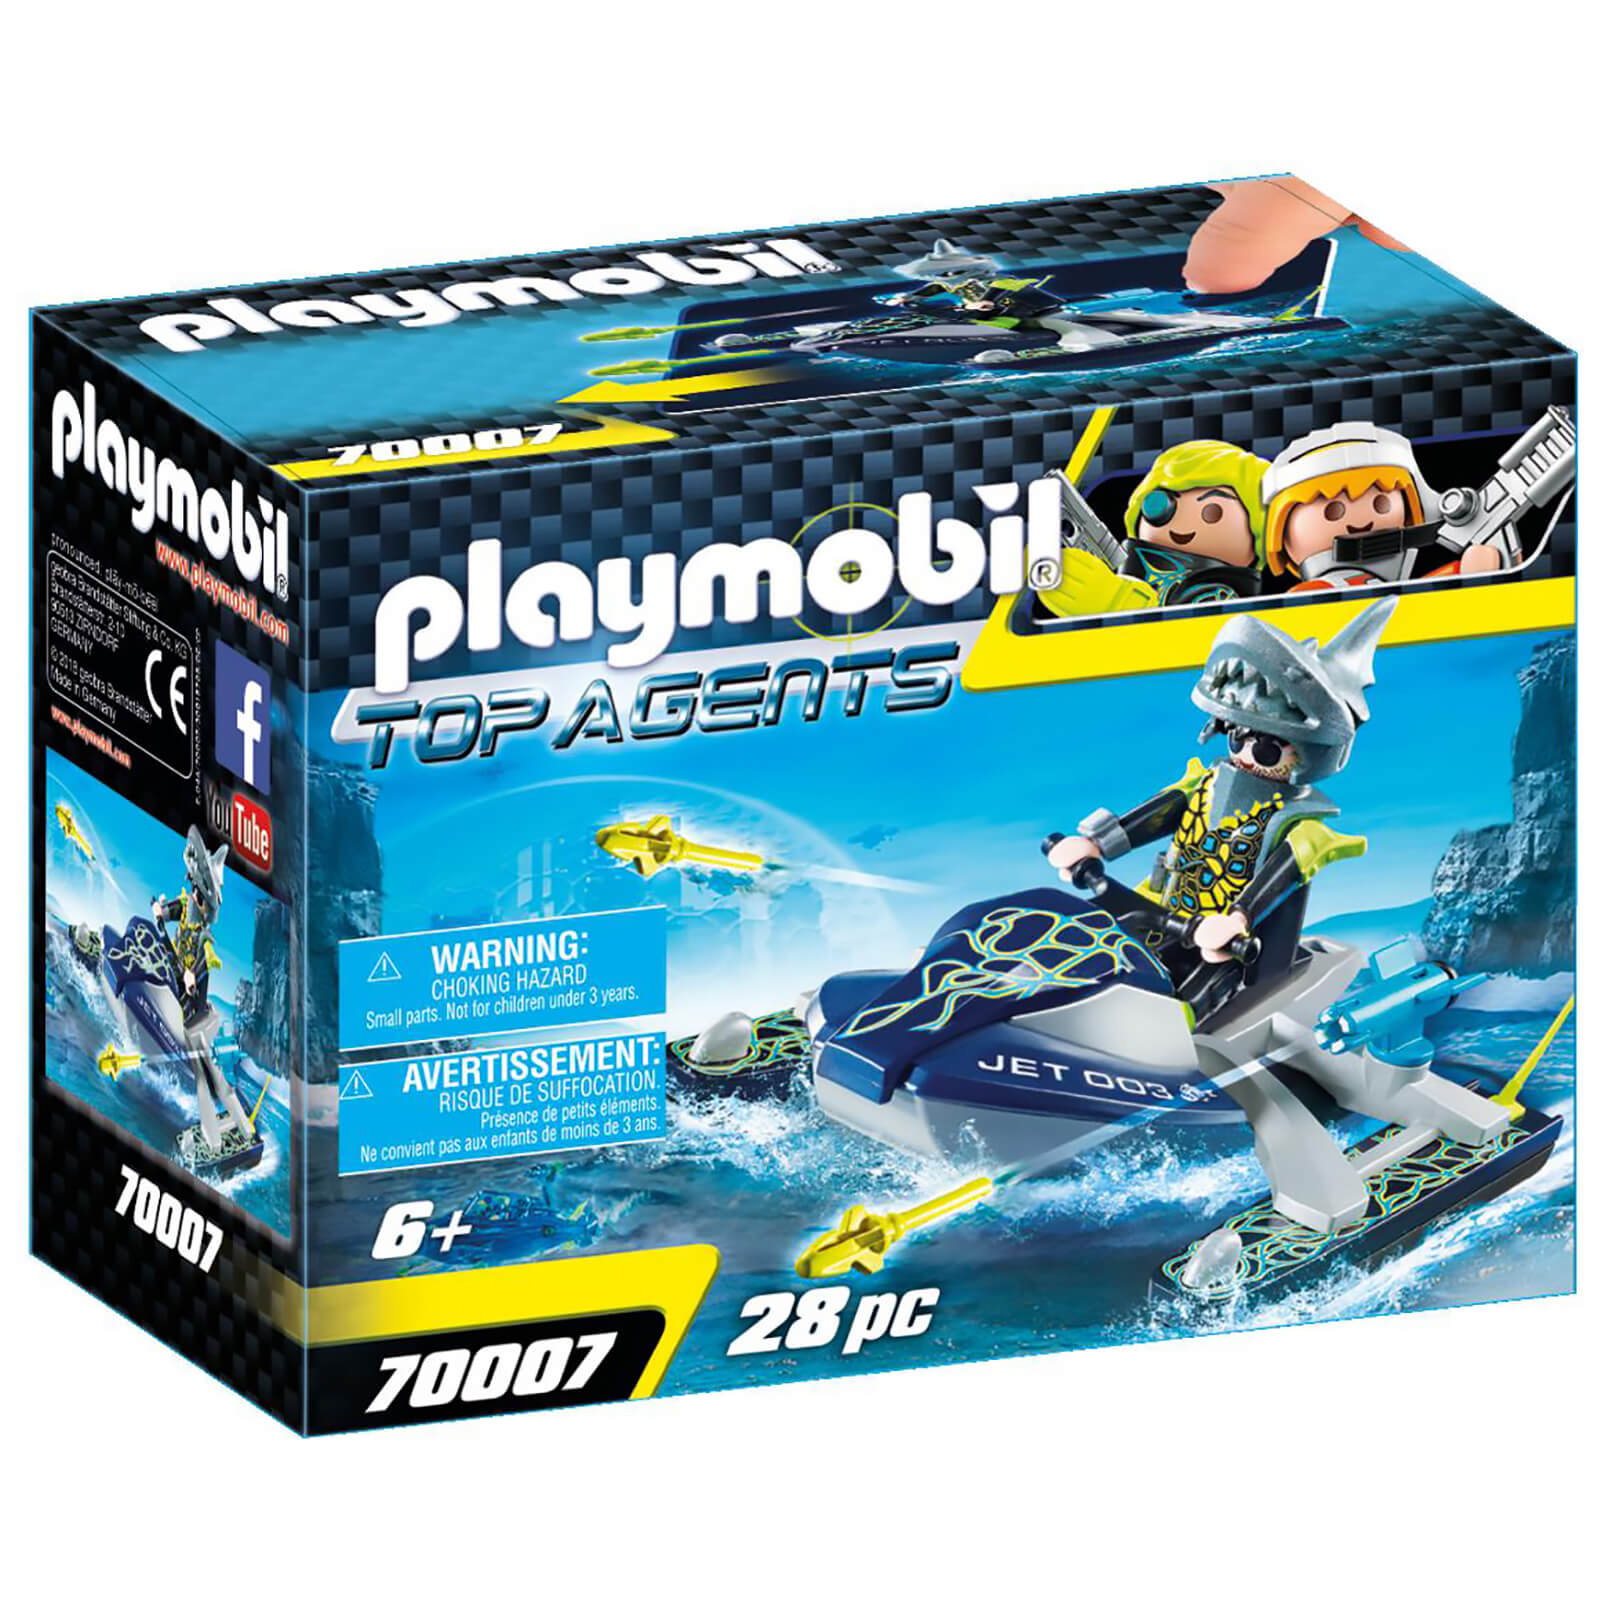 Playmobil Top Agents Team S.H.A.R.K Rocket Rafter (70007)